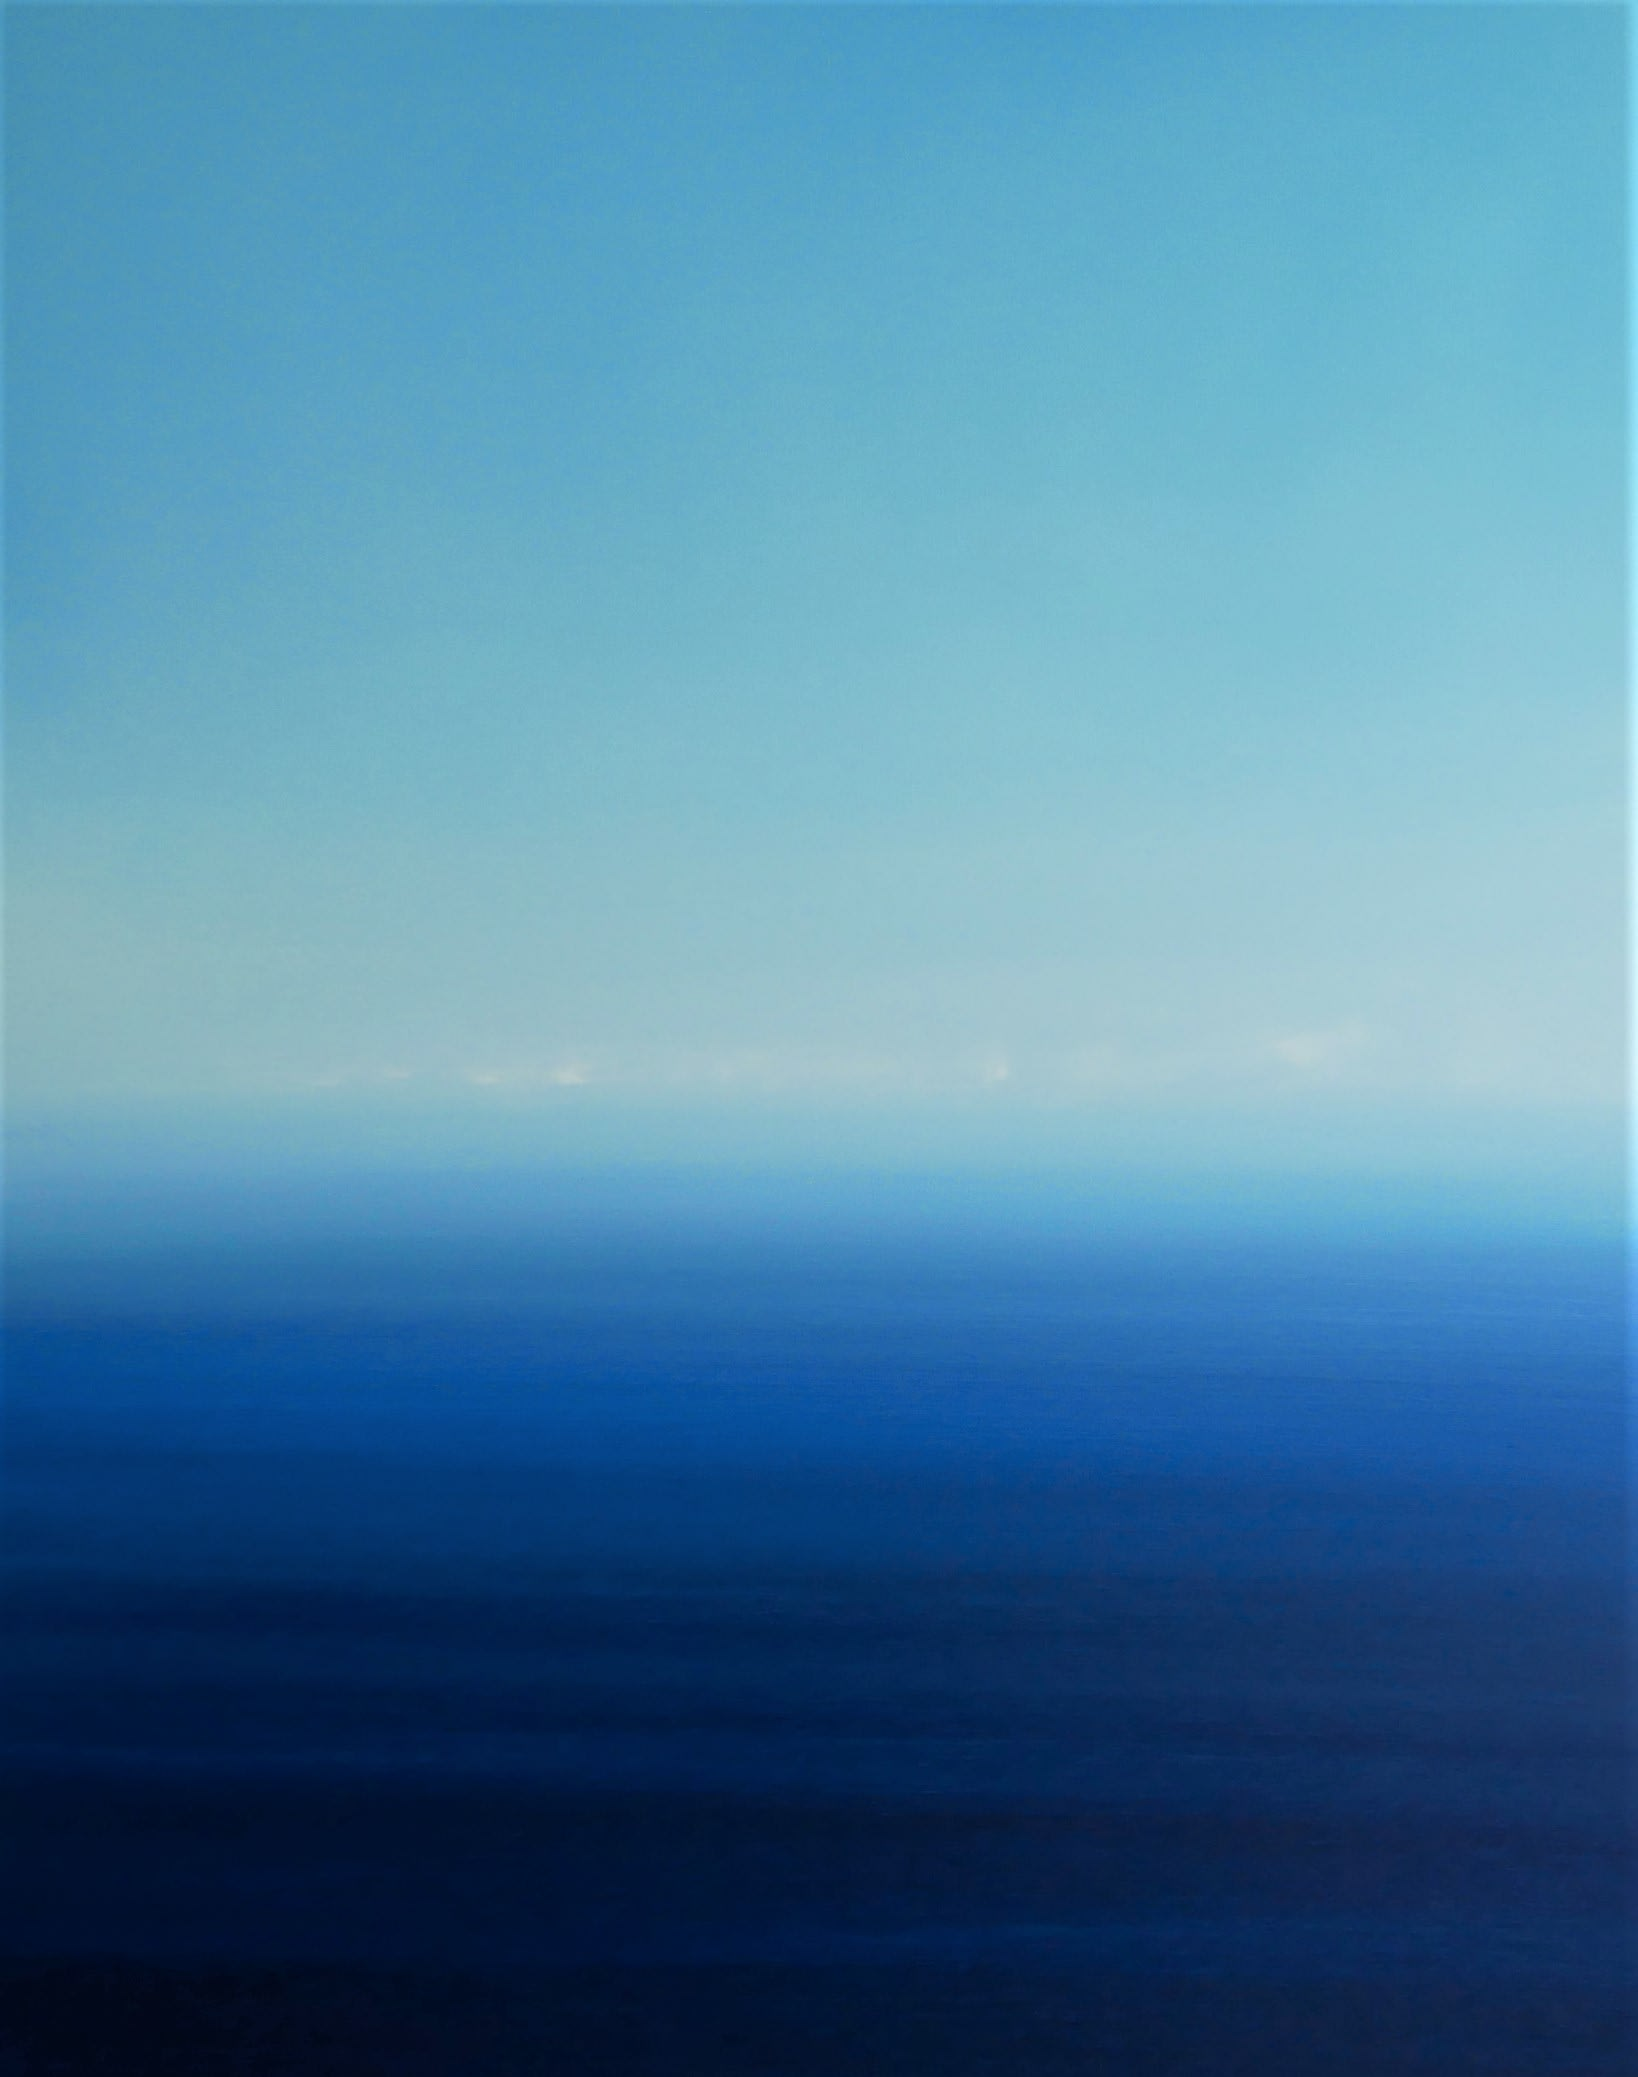 """<span class=""""link fancybox-details-link""""><a href=""""/artists/78-martyn-perryman/works/7753-martyn-perryman-endless-skies-st-ives-bay-2021/"""">View Detail Page</a></span><div class=""""artist""""><strong>Martyn Perryman</strong></div> b. 1963 <div class=""""title""""><em>Endless Skies St Ives Bay</em>, 2021</div> <div class=""""medium"""">oil on canvas<br /> </div> <div class=""""dimensions"""">h. 100 x w. 80 cm </div><div class=""""copyright_line"""">Ownart: £130 x 10 Months, 0% APR</div>"""